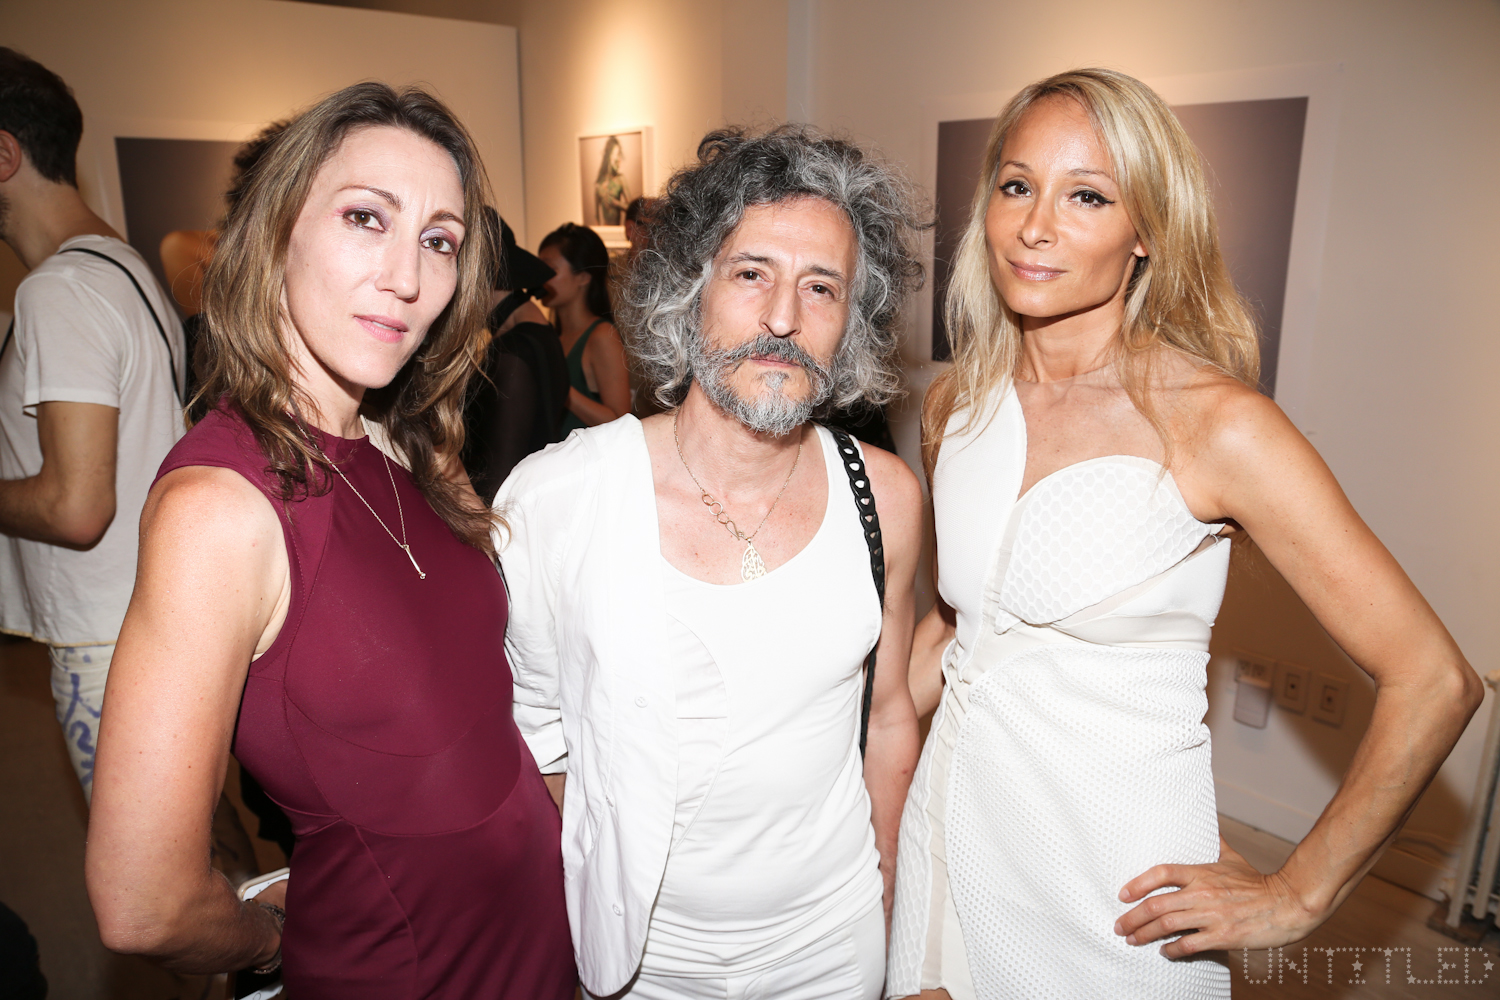 """""""Cardiac Insomniac"""" Artist Reception. A Solo Show of Works by ANGE aka Angela Donhauser - June 2016 - The Untitled Space gallery, New York. Photography by Dustin Wayne Harris."""